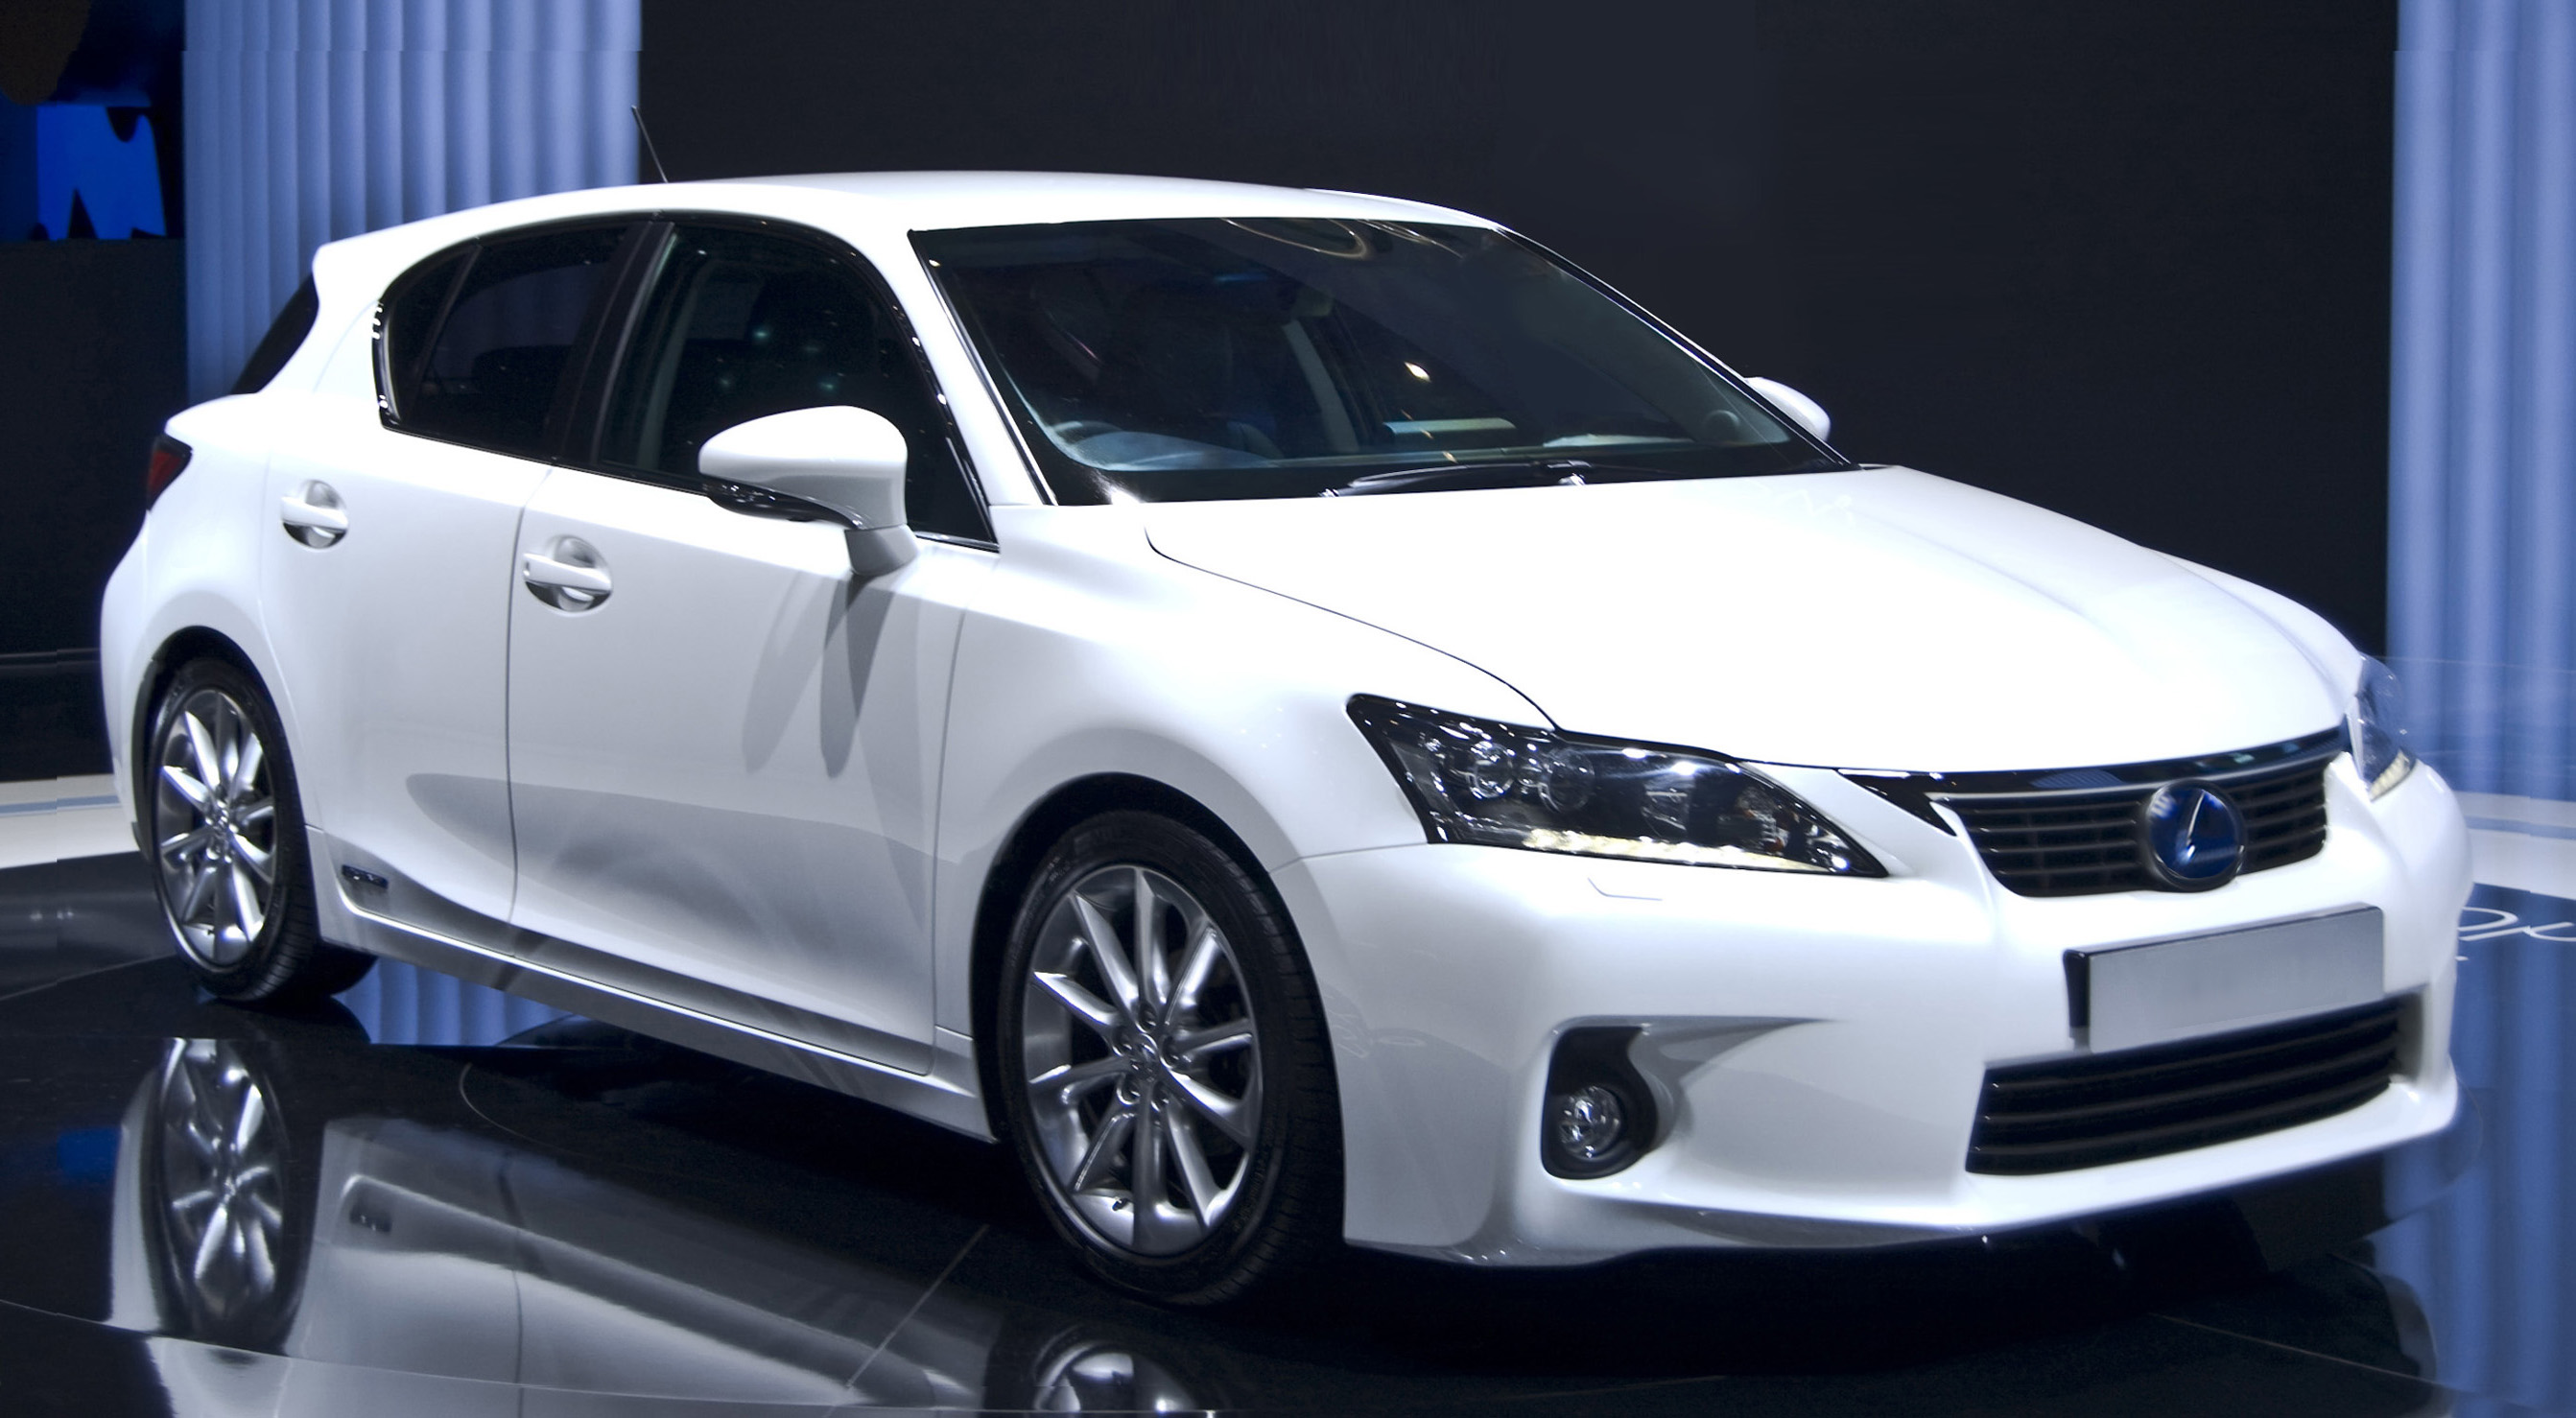 File Lexus CT200h side Wikimedia mons